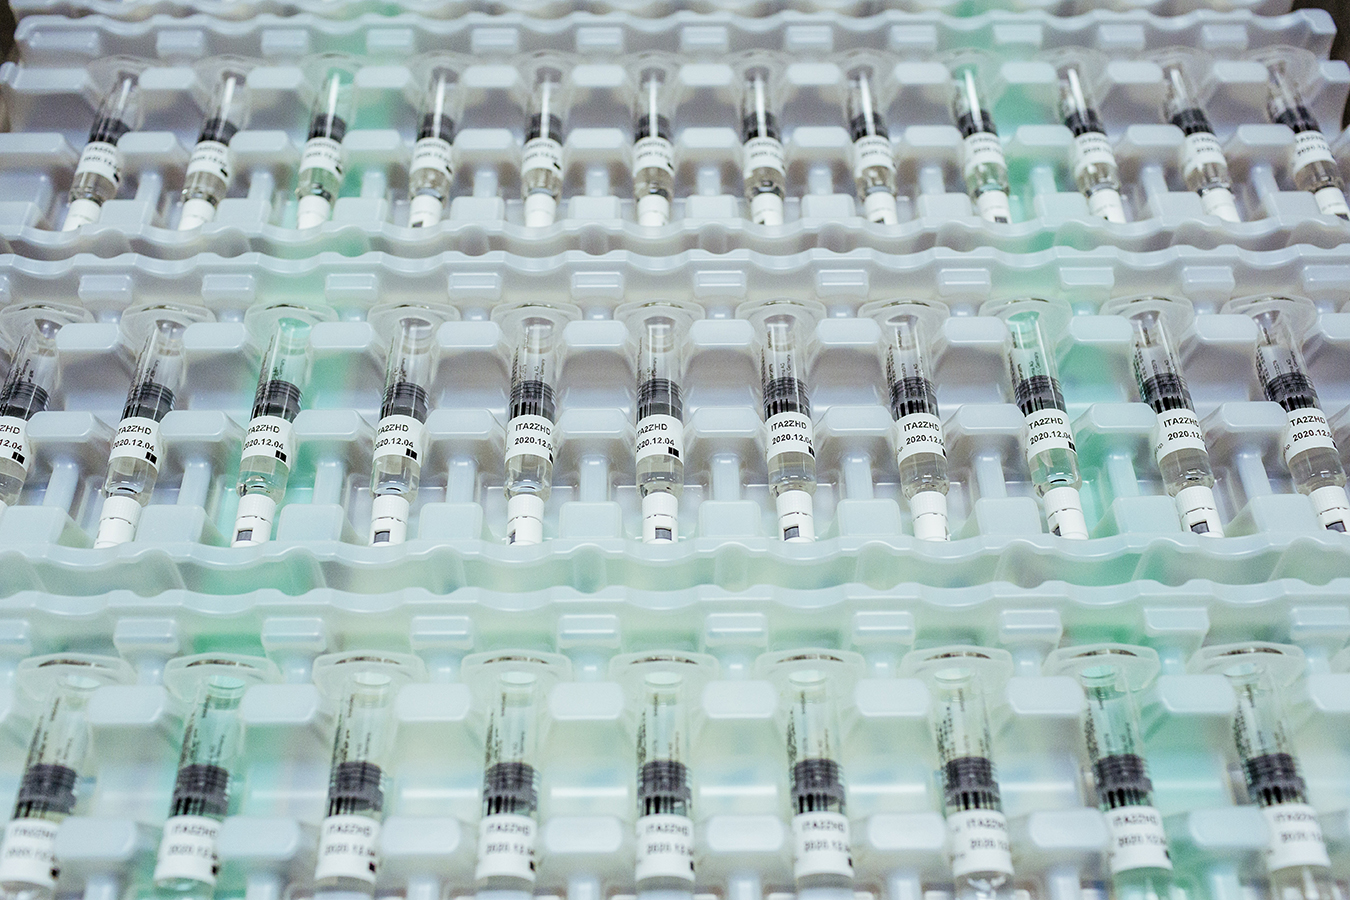 Vials of Bayer's factor VIII product Kogenate at the company's factory in Berkeley, Calif.